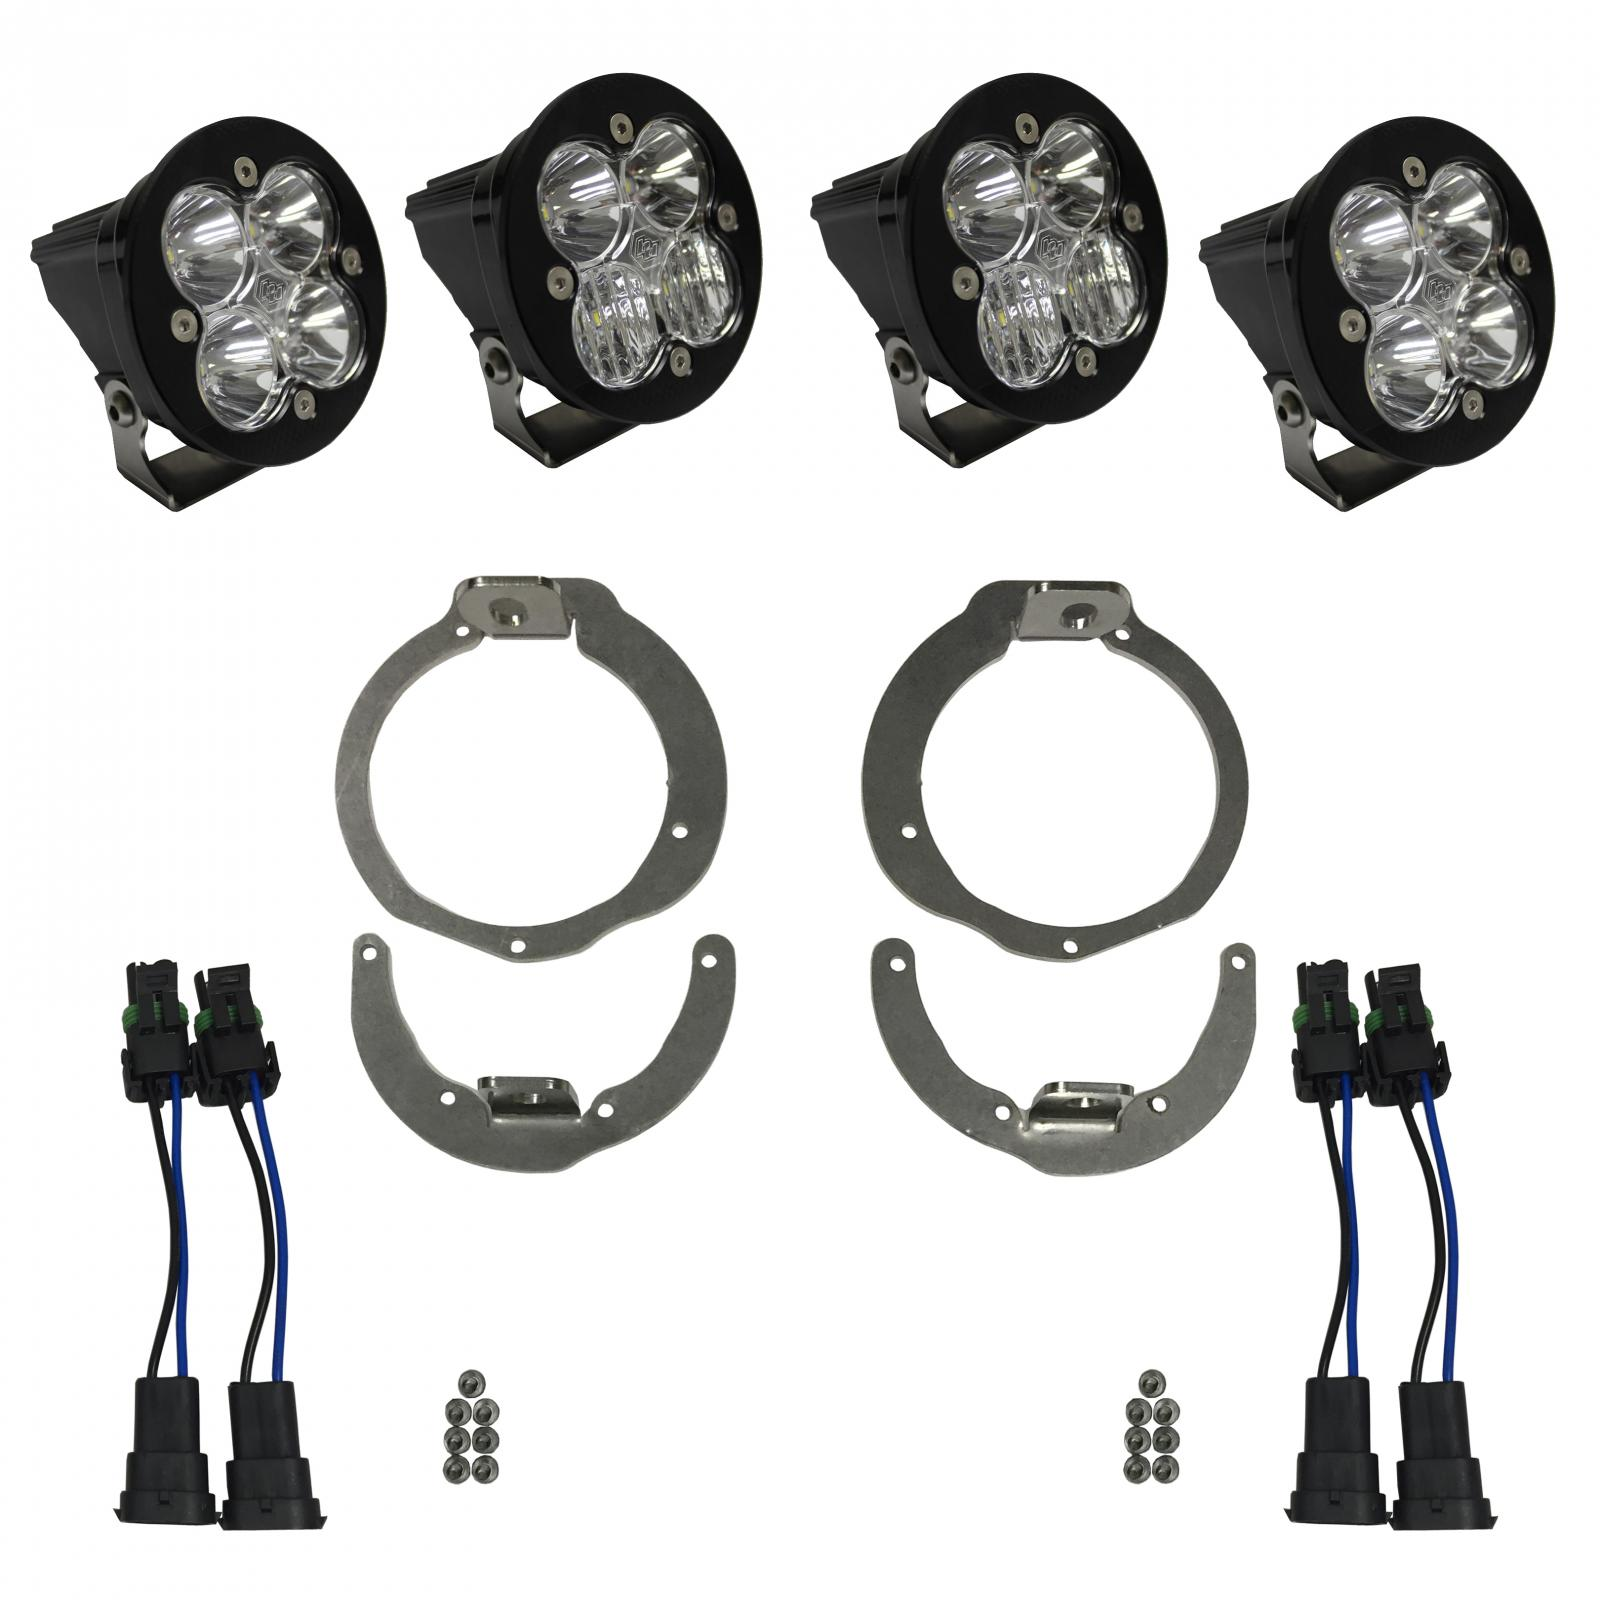 Baja Designs Can-Am Headlight Kit 13-16 Maverick/11-16 Renegade Kit Unlimited